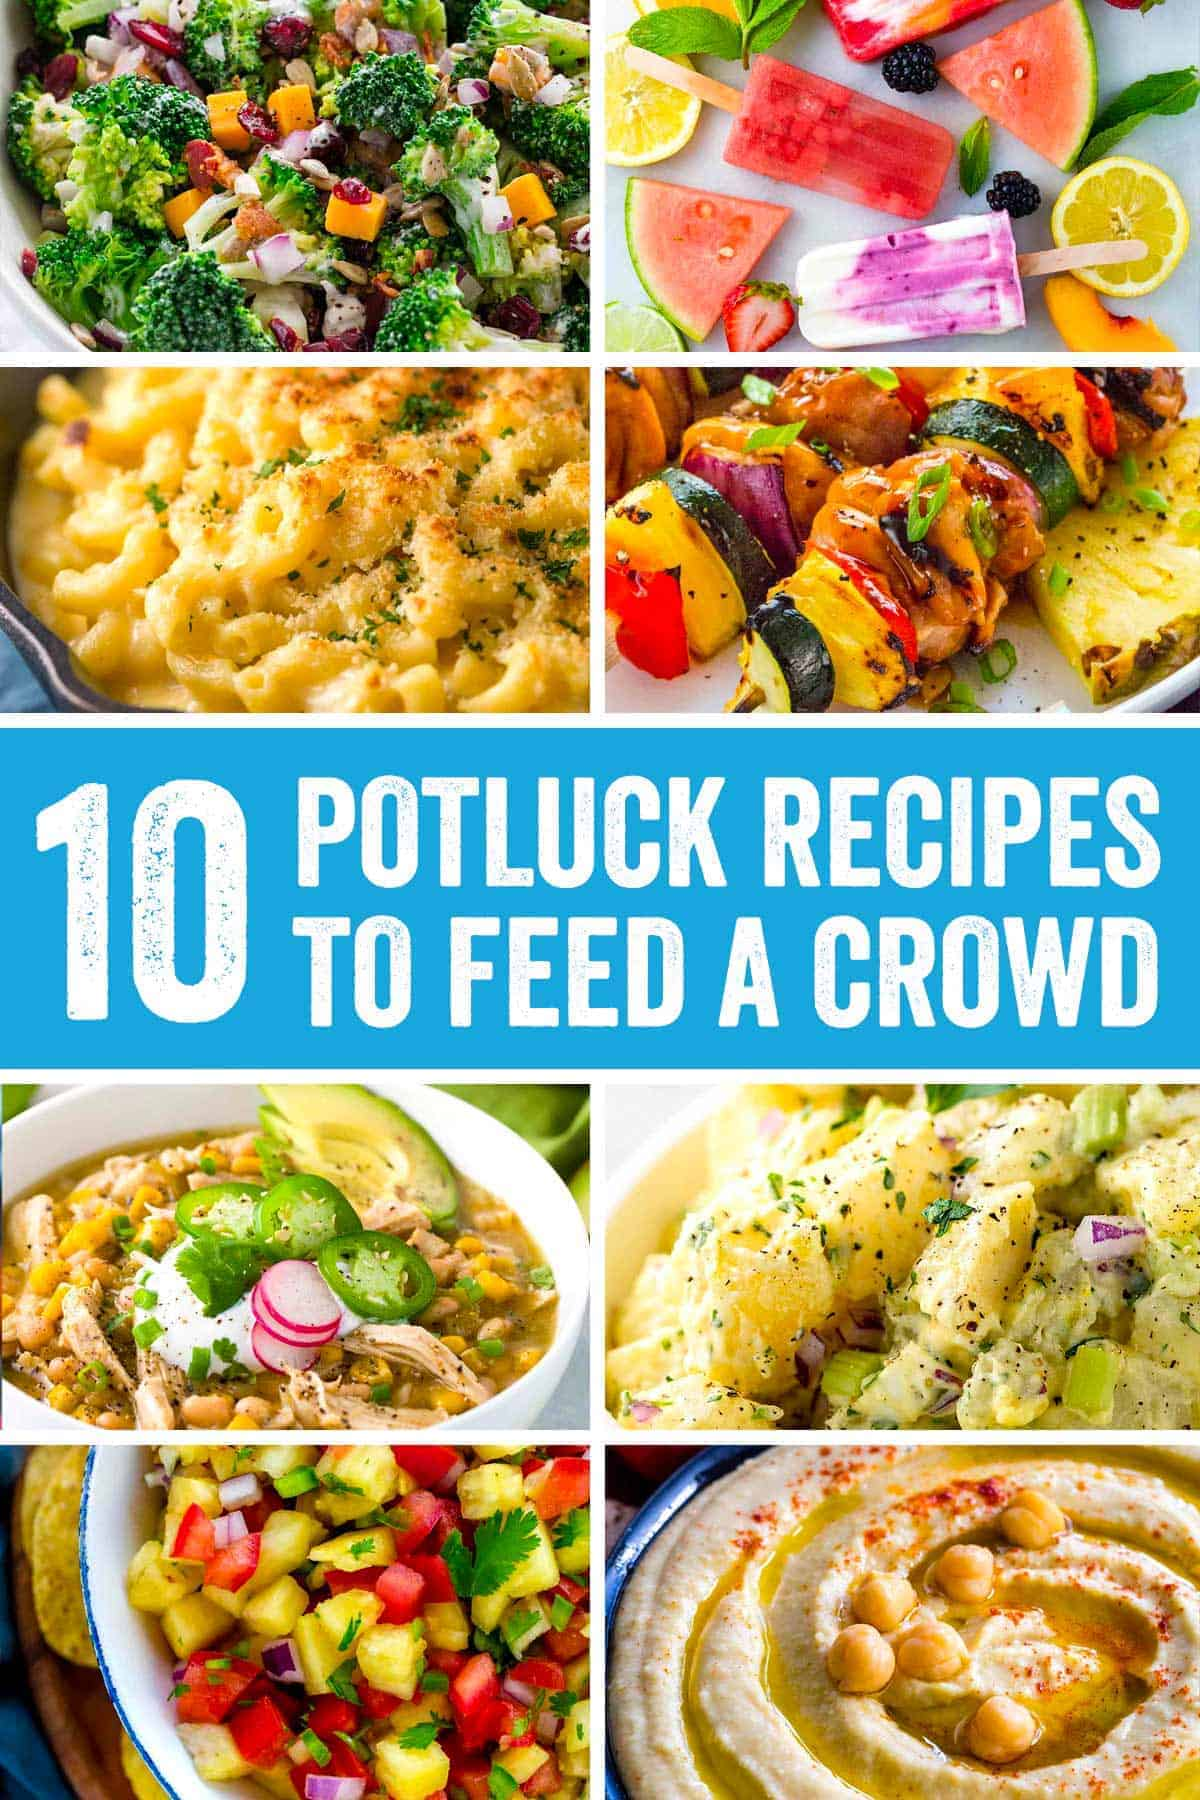 Potluck Recipes to Feed A Crowd